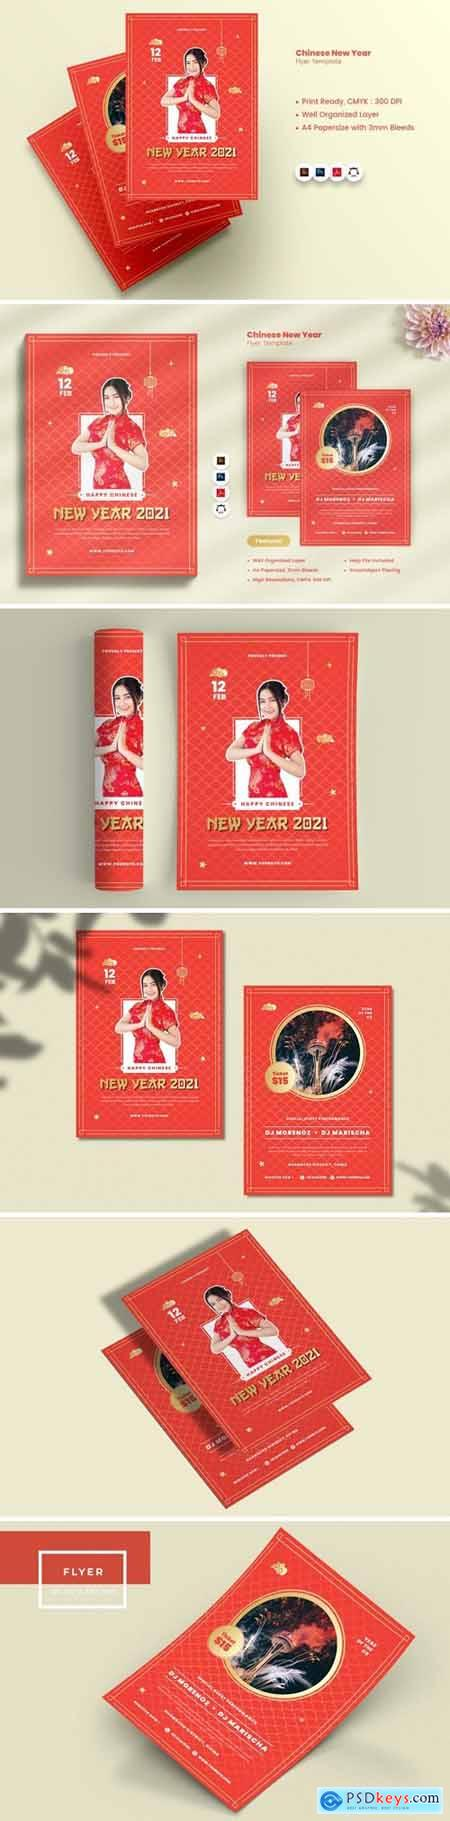 Chinese New Year Flyer985